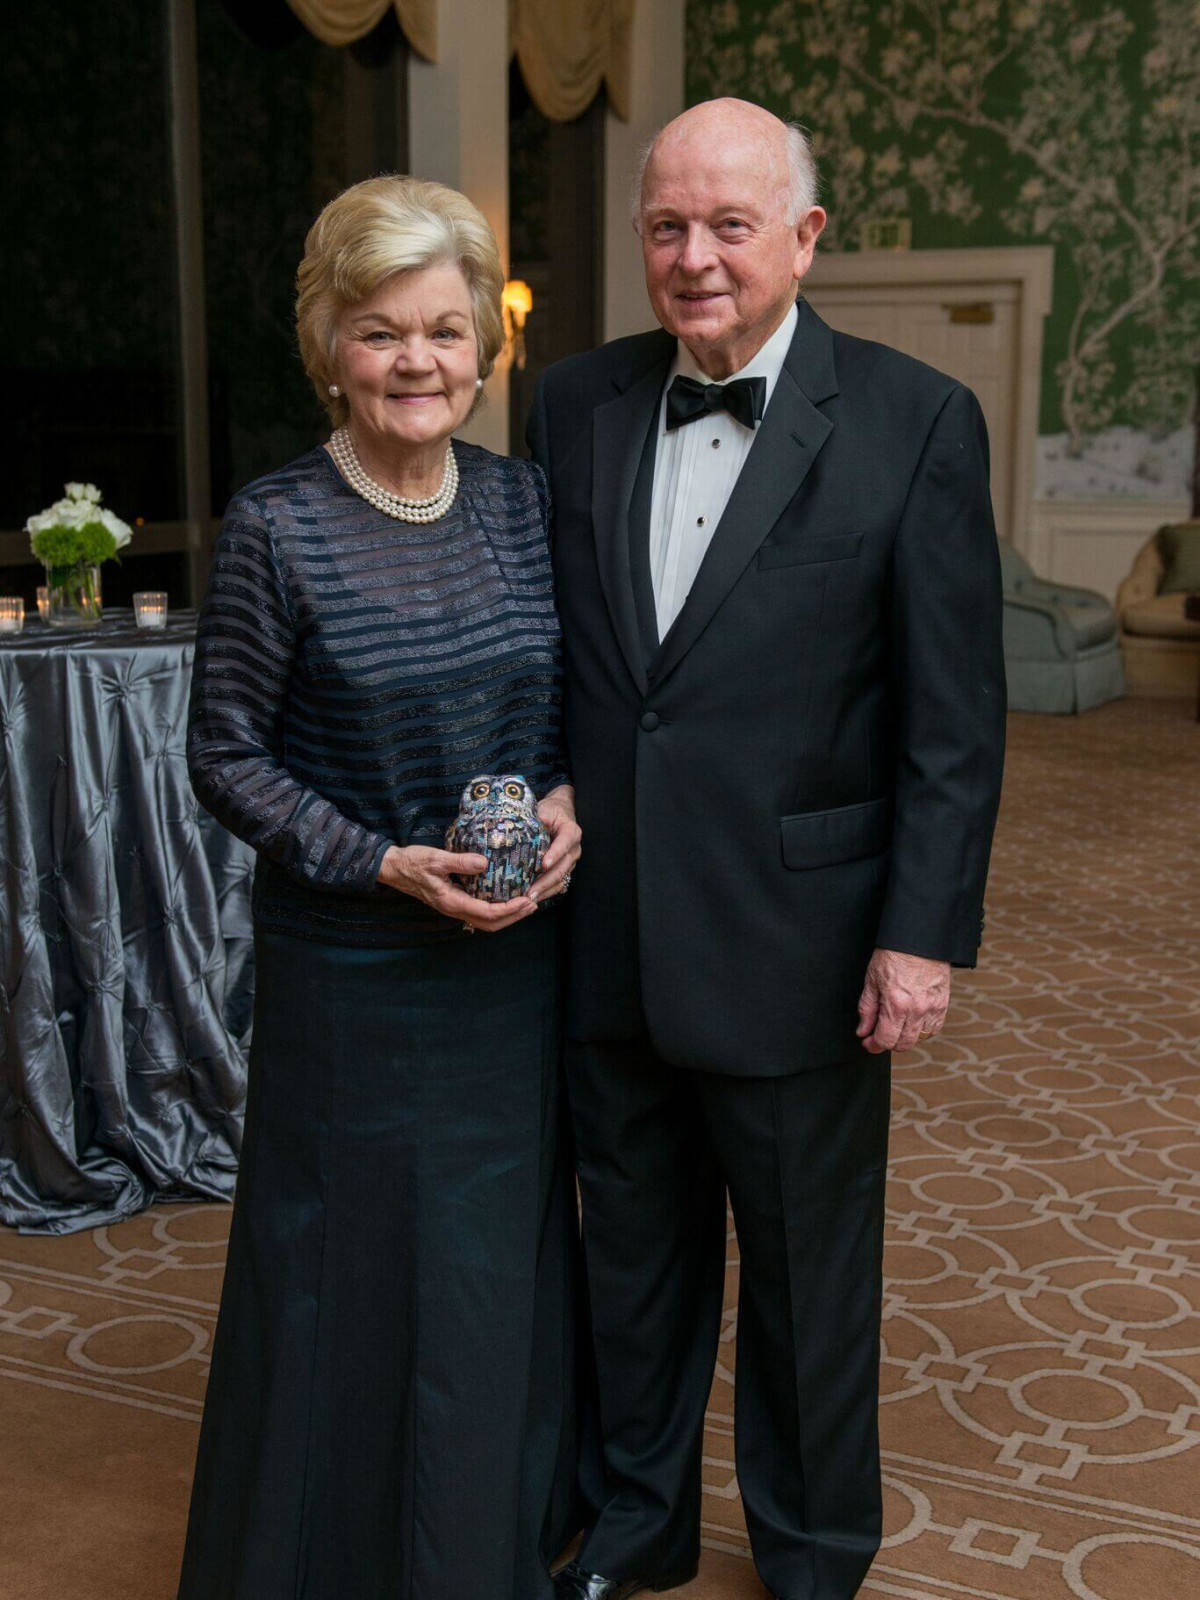 Melberneand Susanne Glasscock at Rice Honor Gala